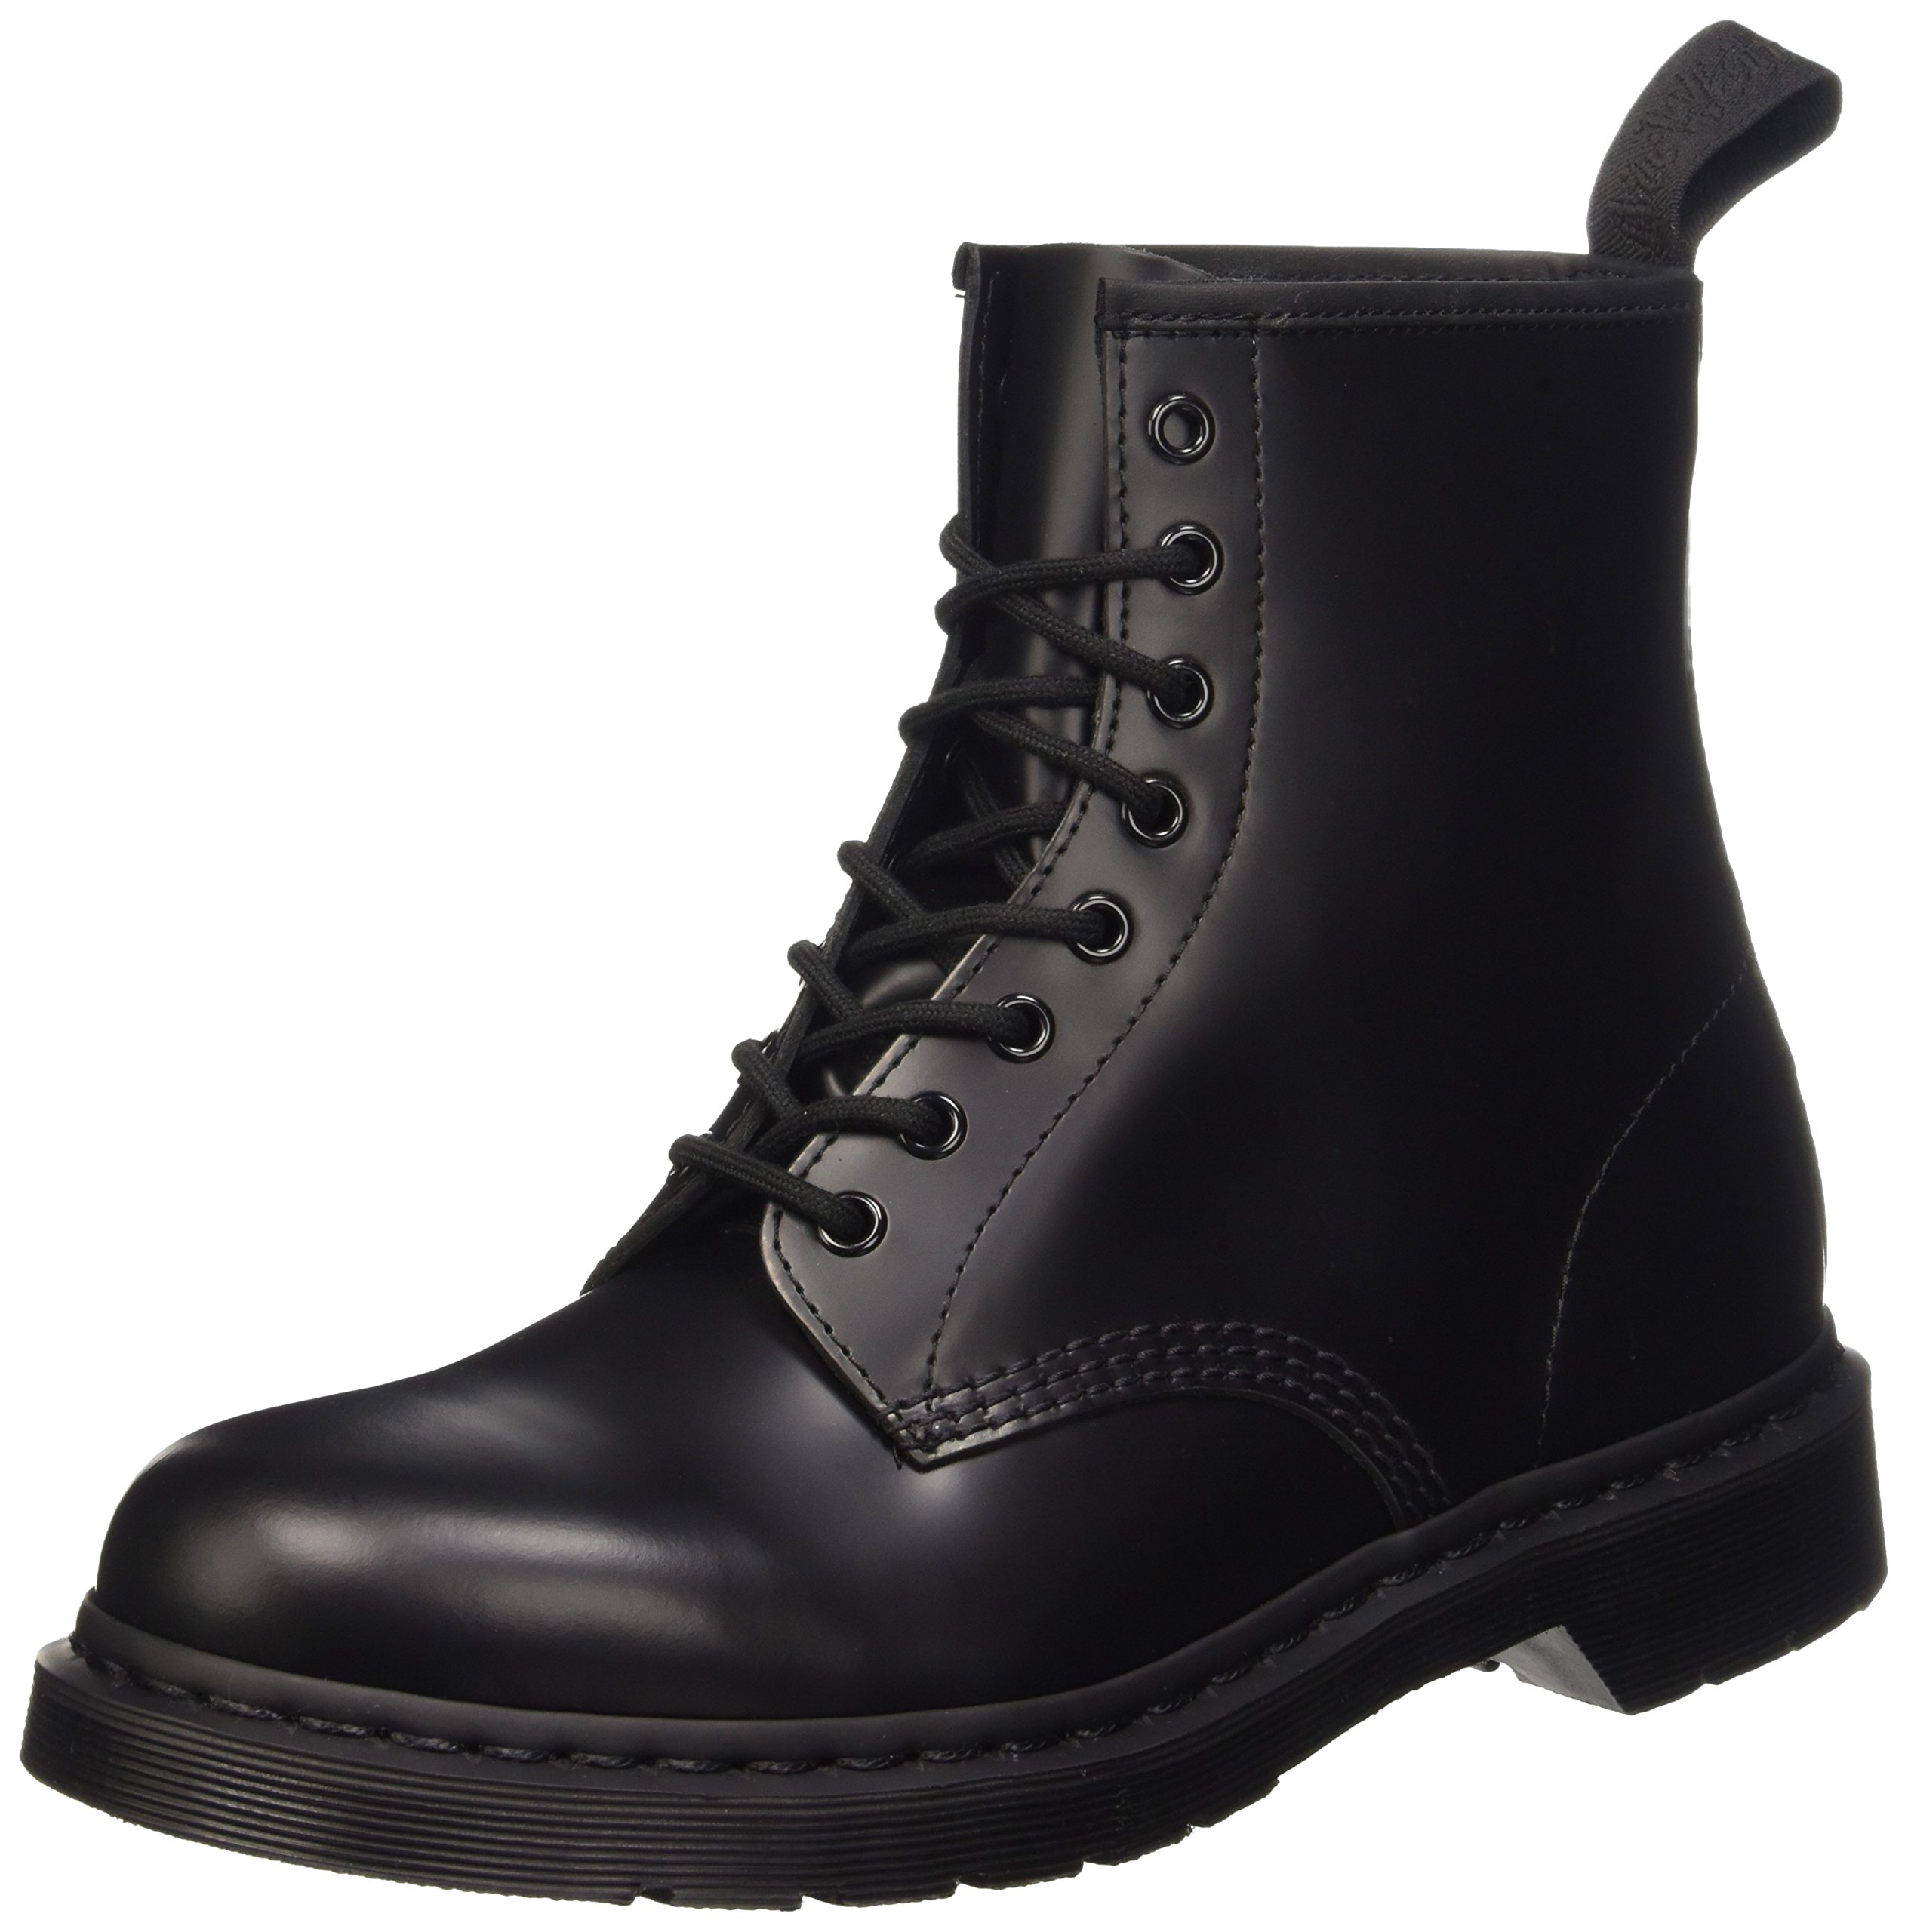 Dr. Martens Unisex 1460 8-Tie Lace-Up Boot,Black Smooth,UK 8 (US 9, 10) M US by Dr. Martens